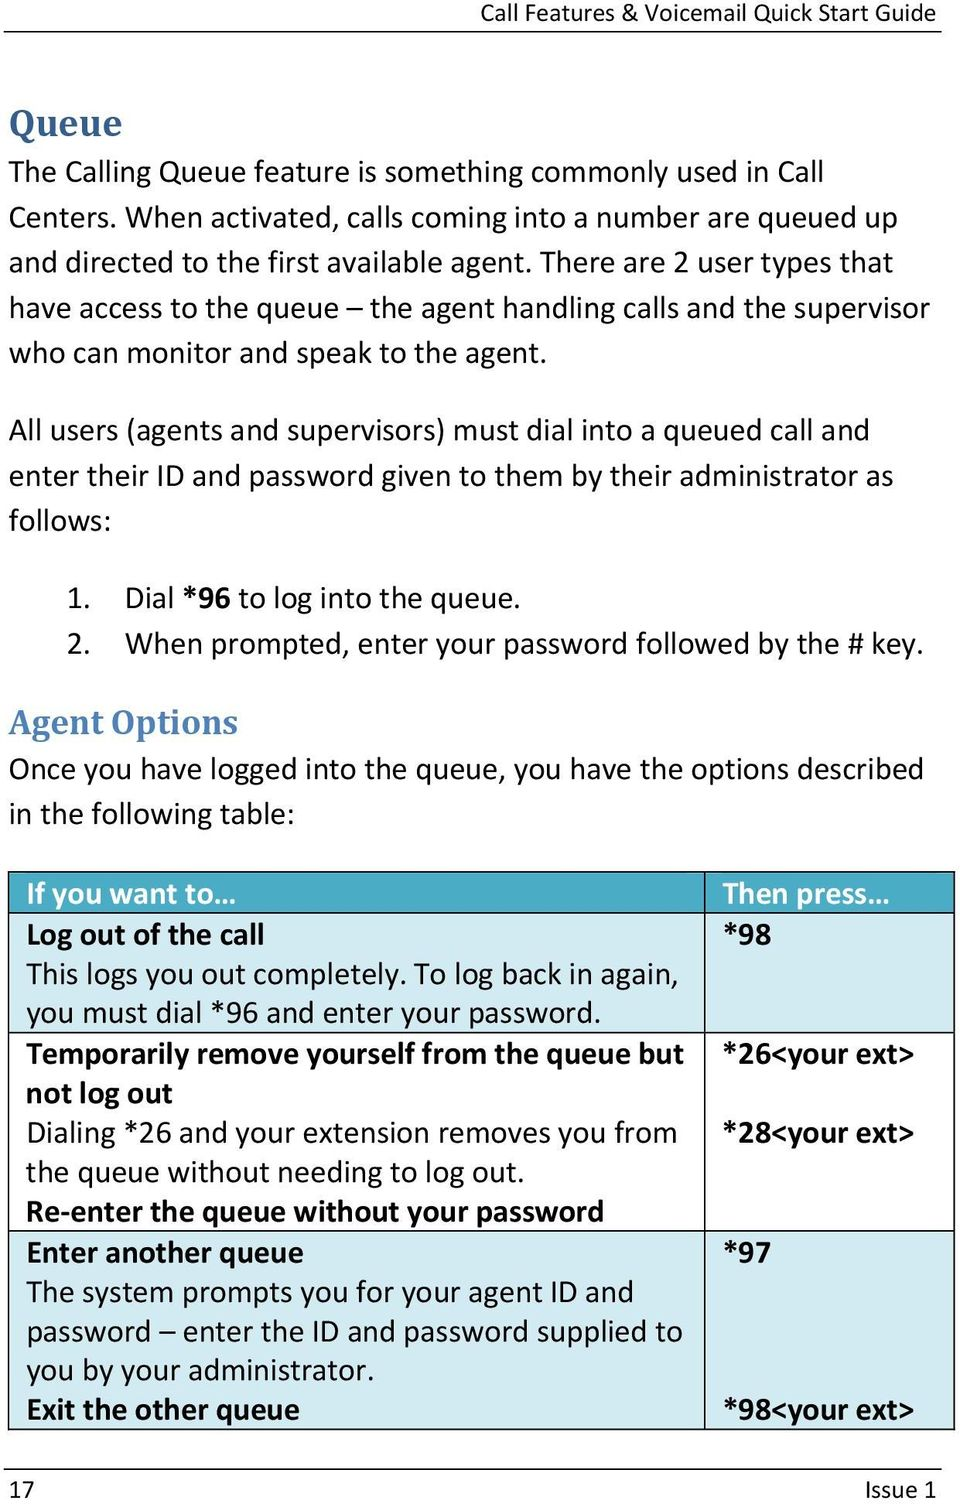 All users (agents and supervisors) must dial into a queued call and enter their ID and password given to them by their administrator as follows: 1. Dial *96 to log into the queue. 2.